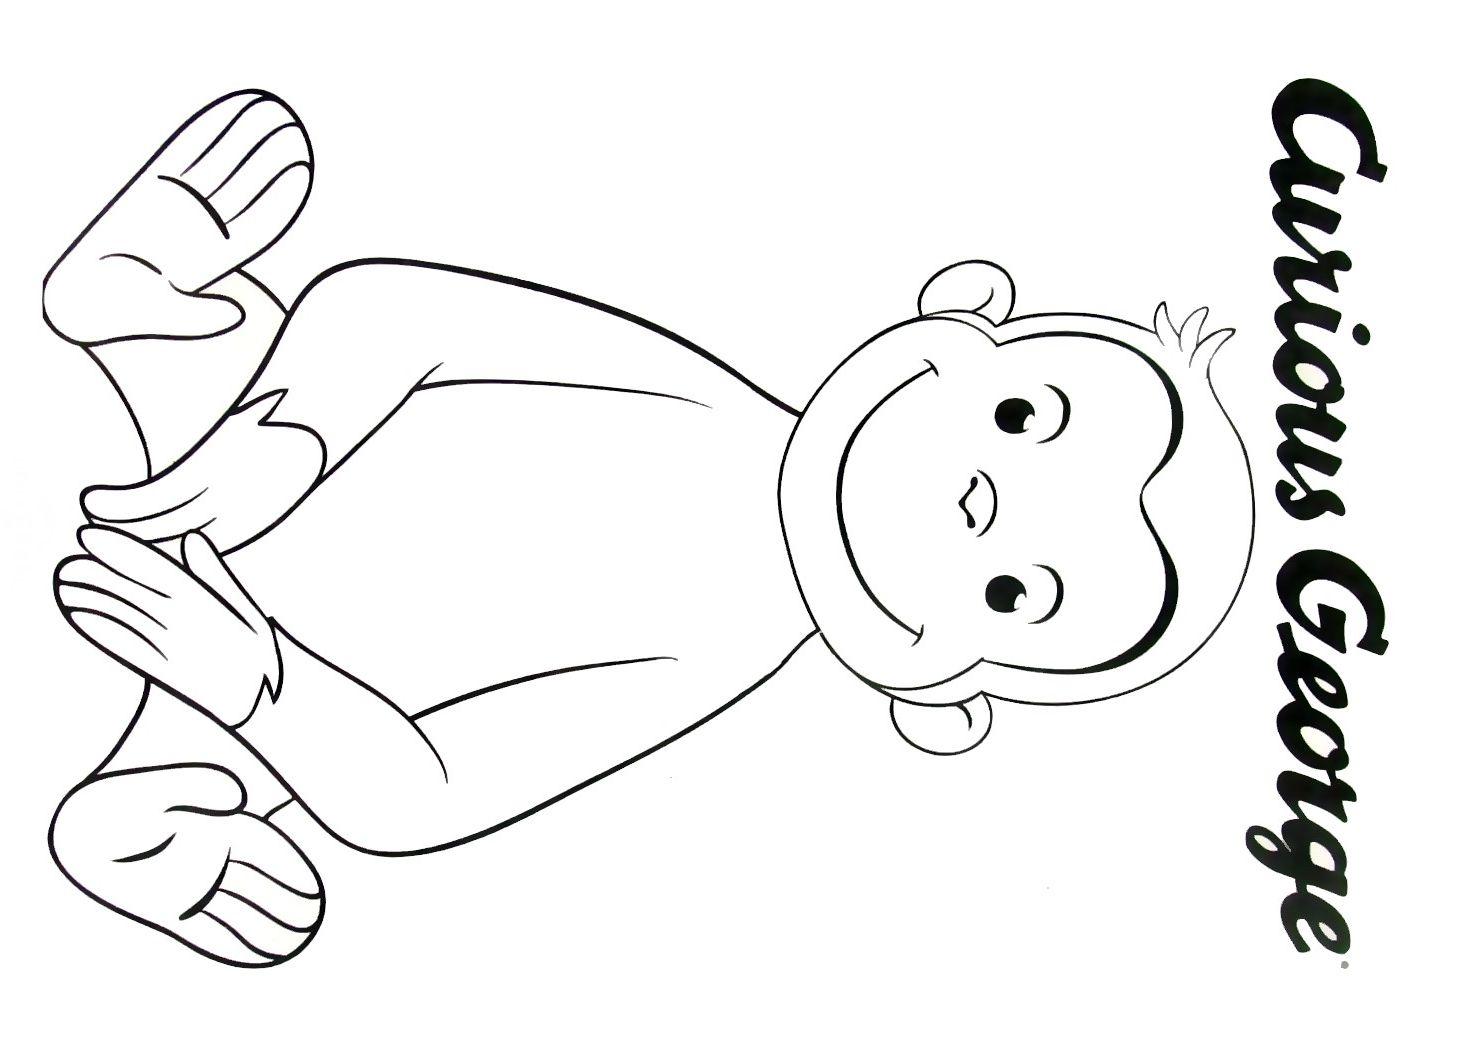 Curious George Coloring Book Page Printable | Curious George ...